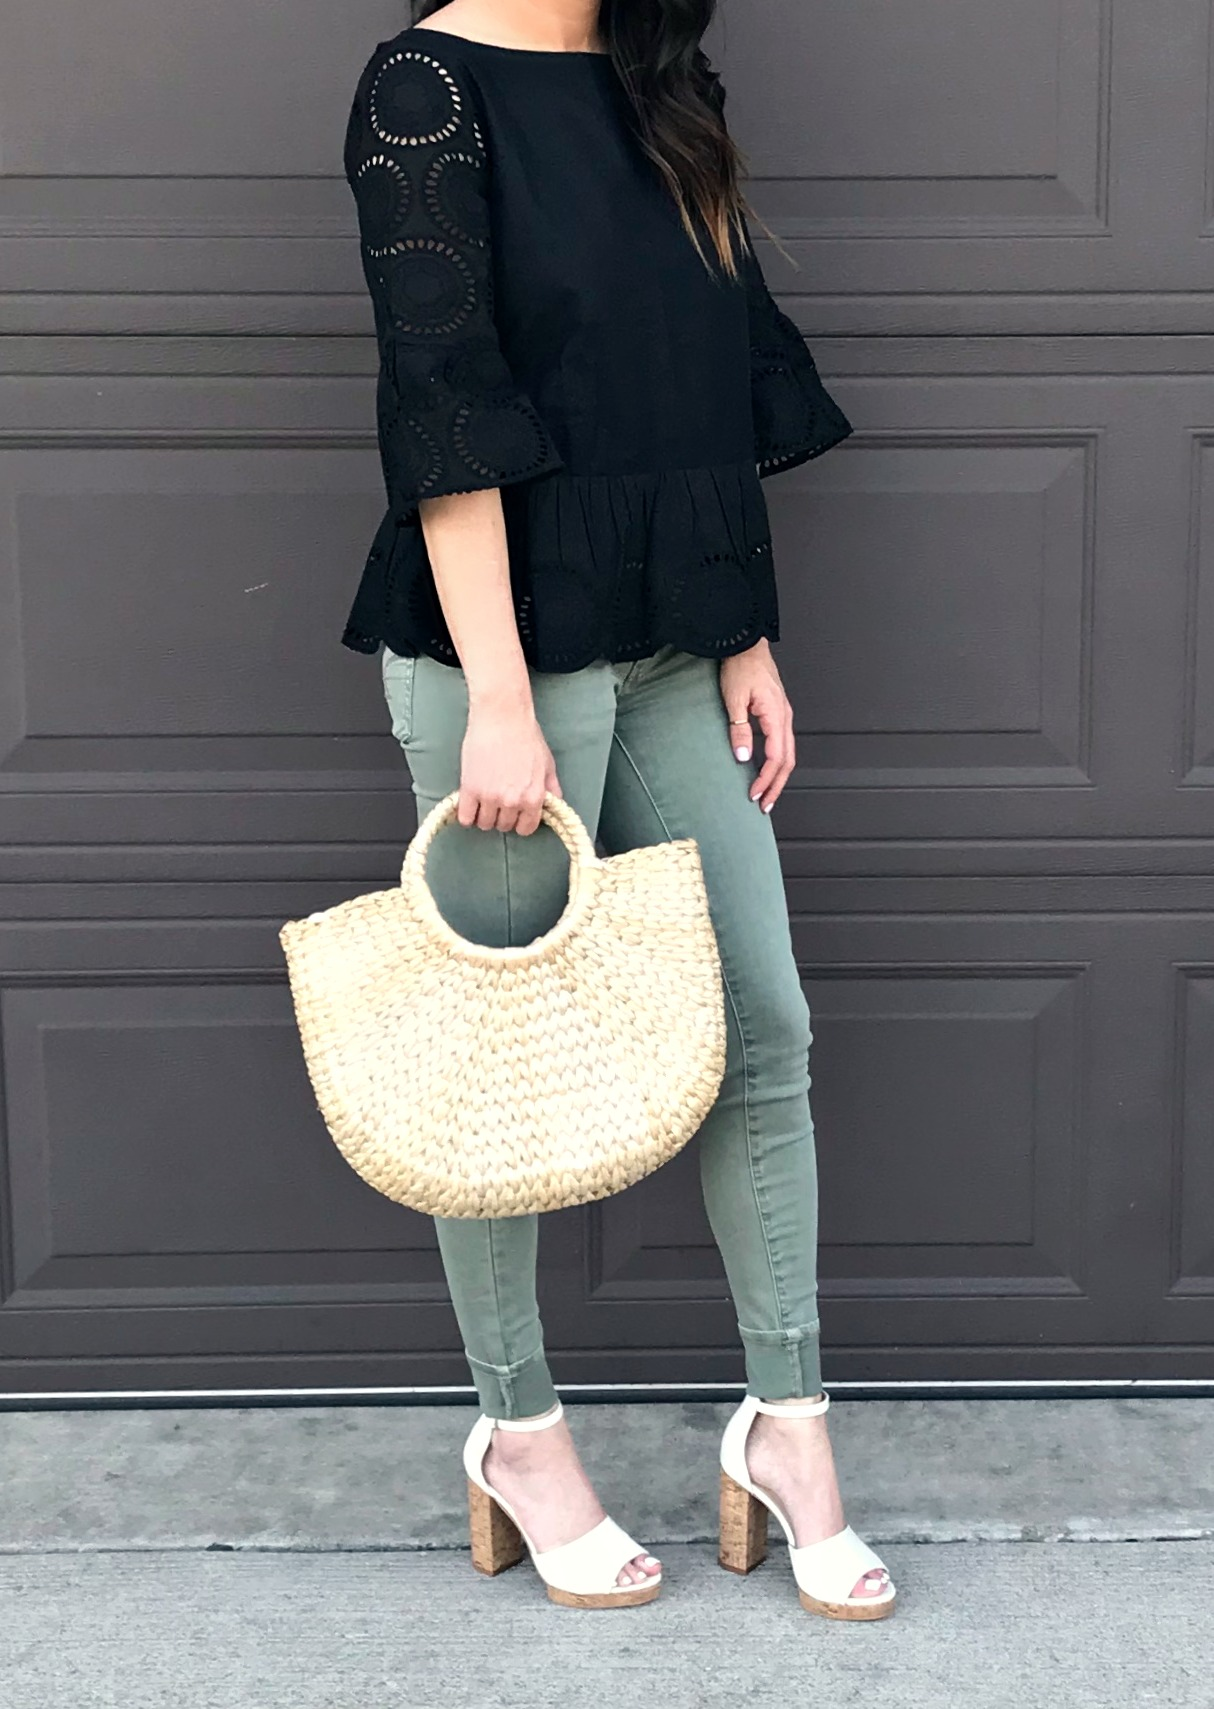 Green Pants, Straw Bag, Sandals